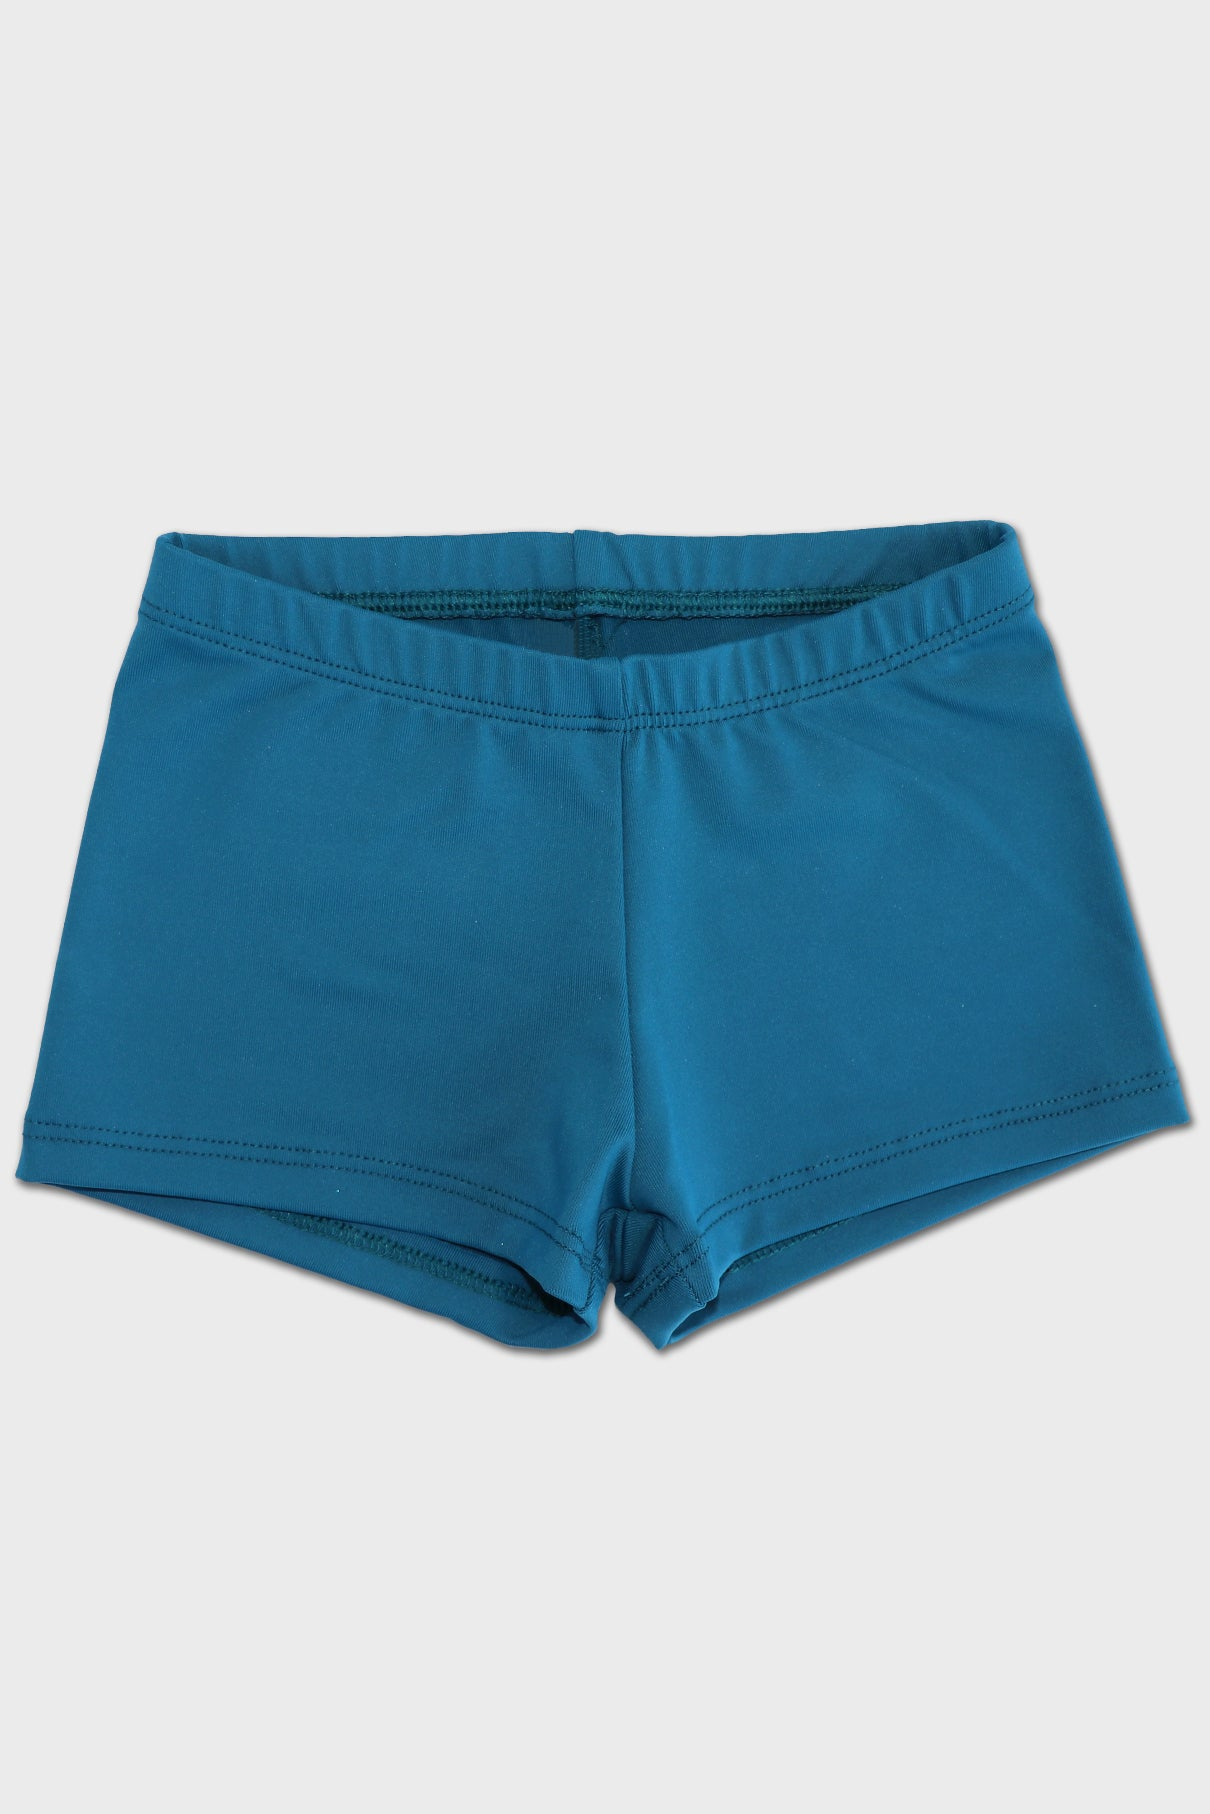 Superflex Shorts - Peacock